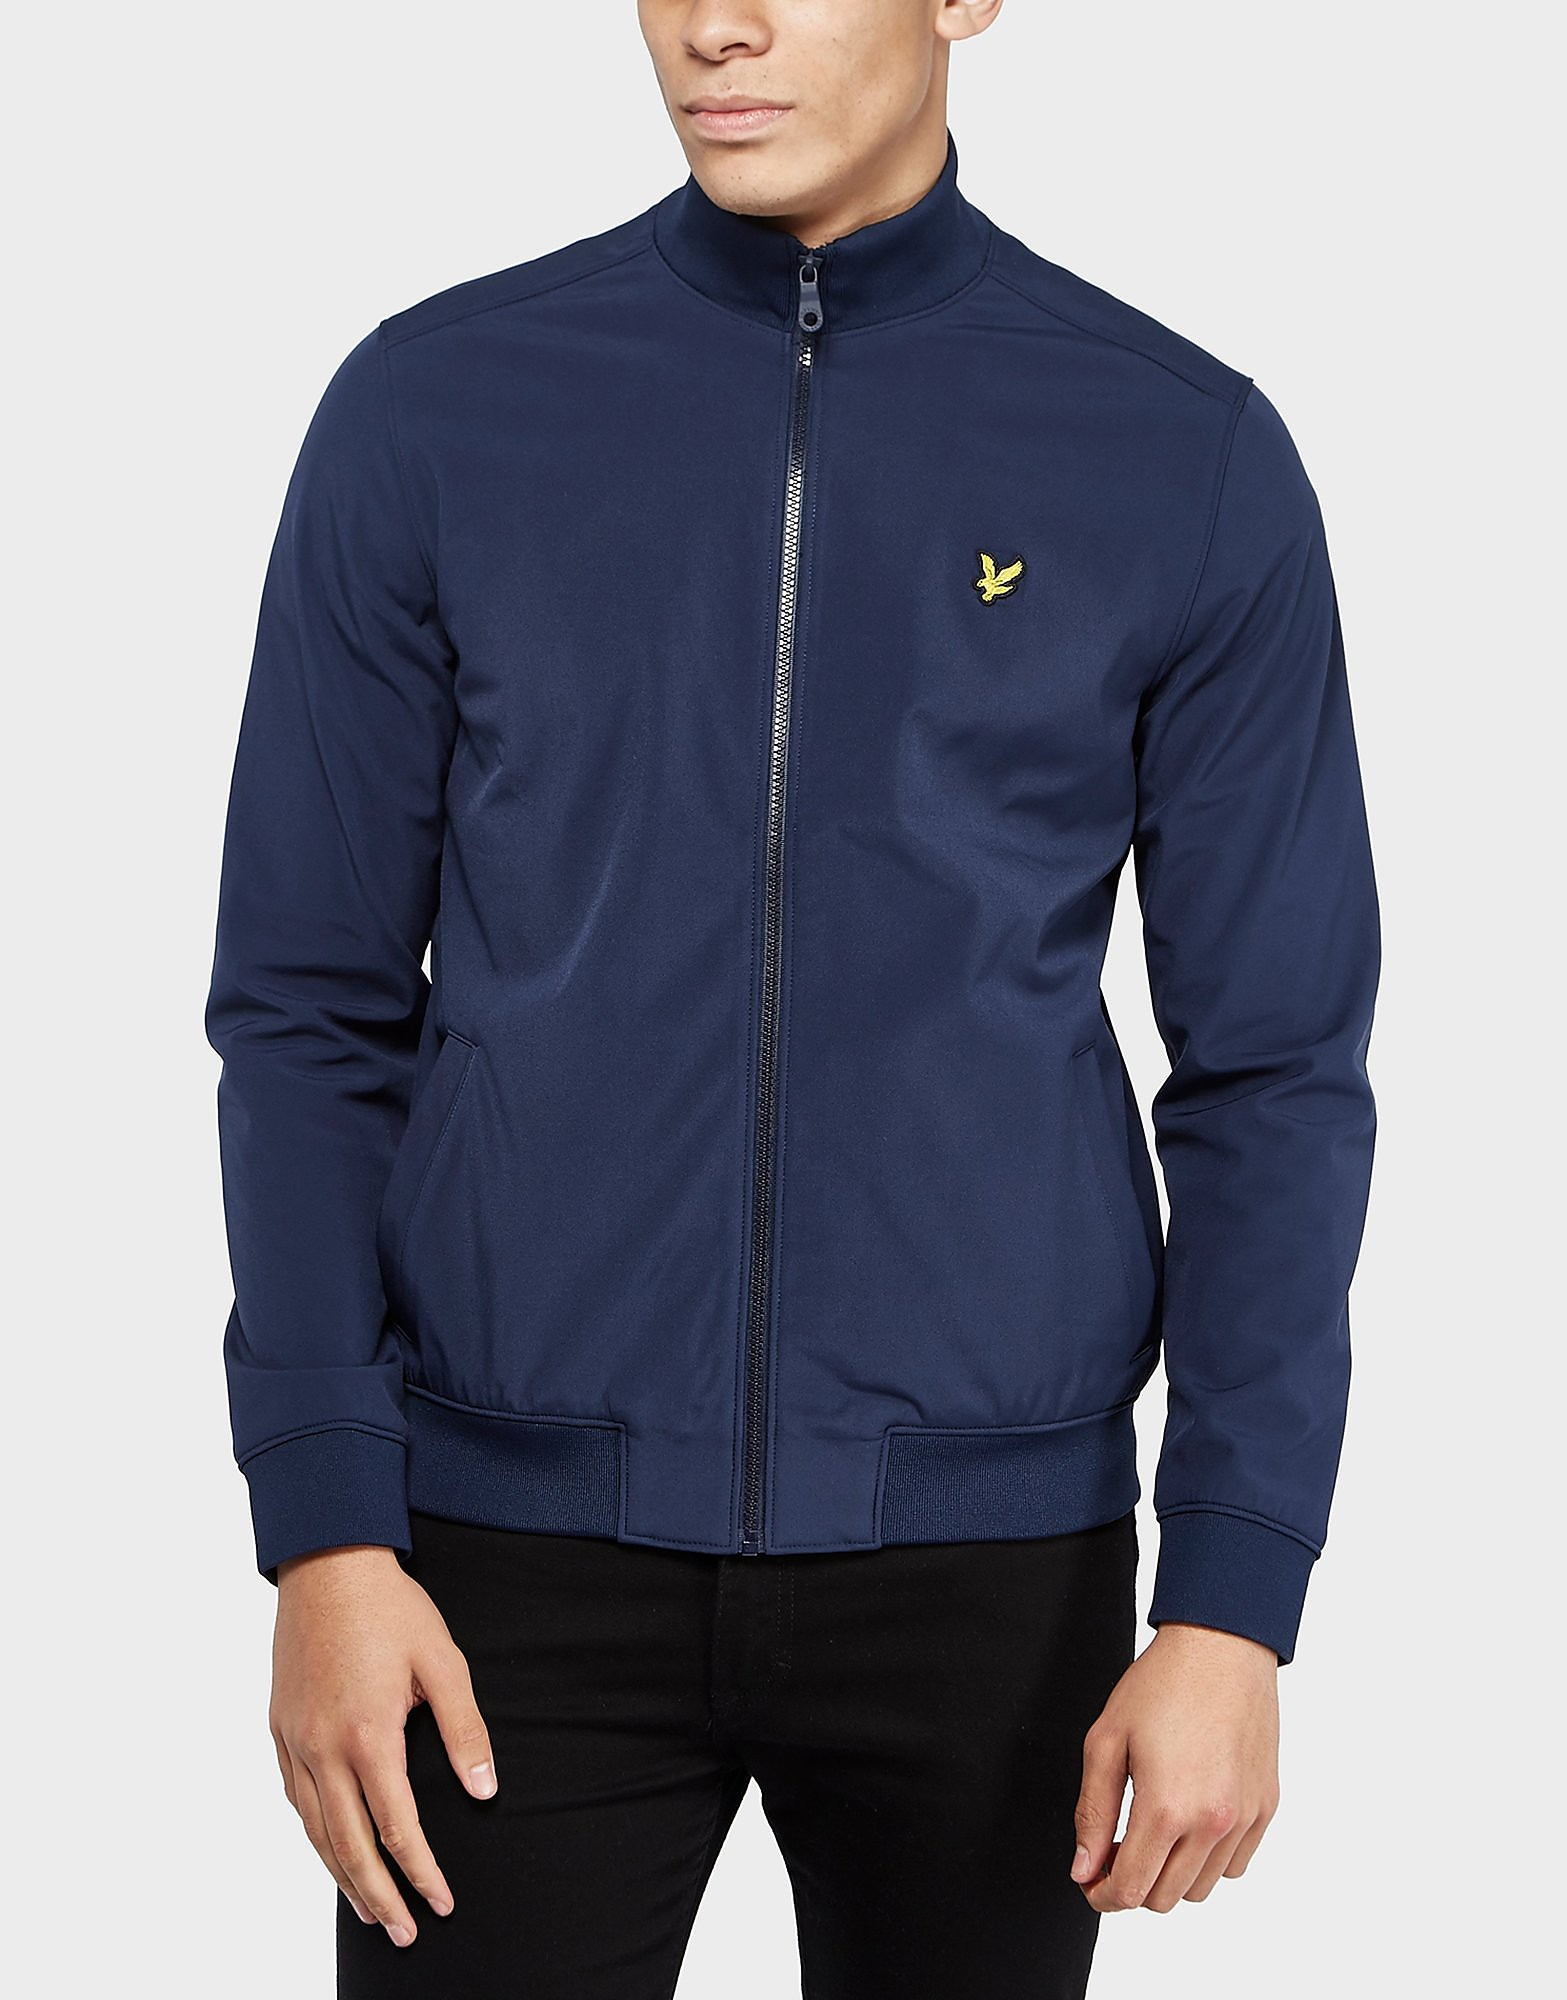 Lyle & Scott Lightweight Softshell Jacket